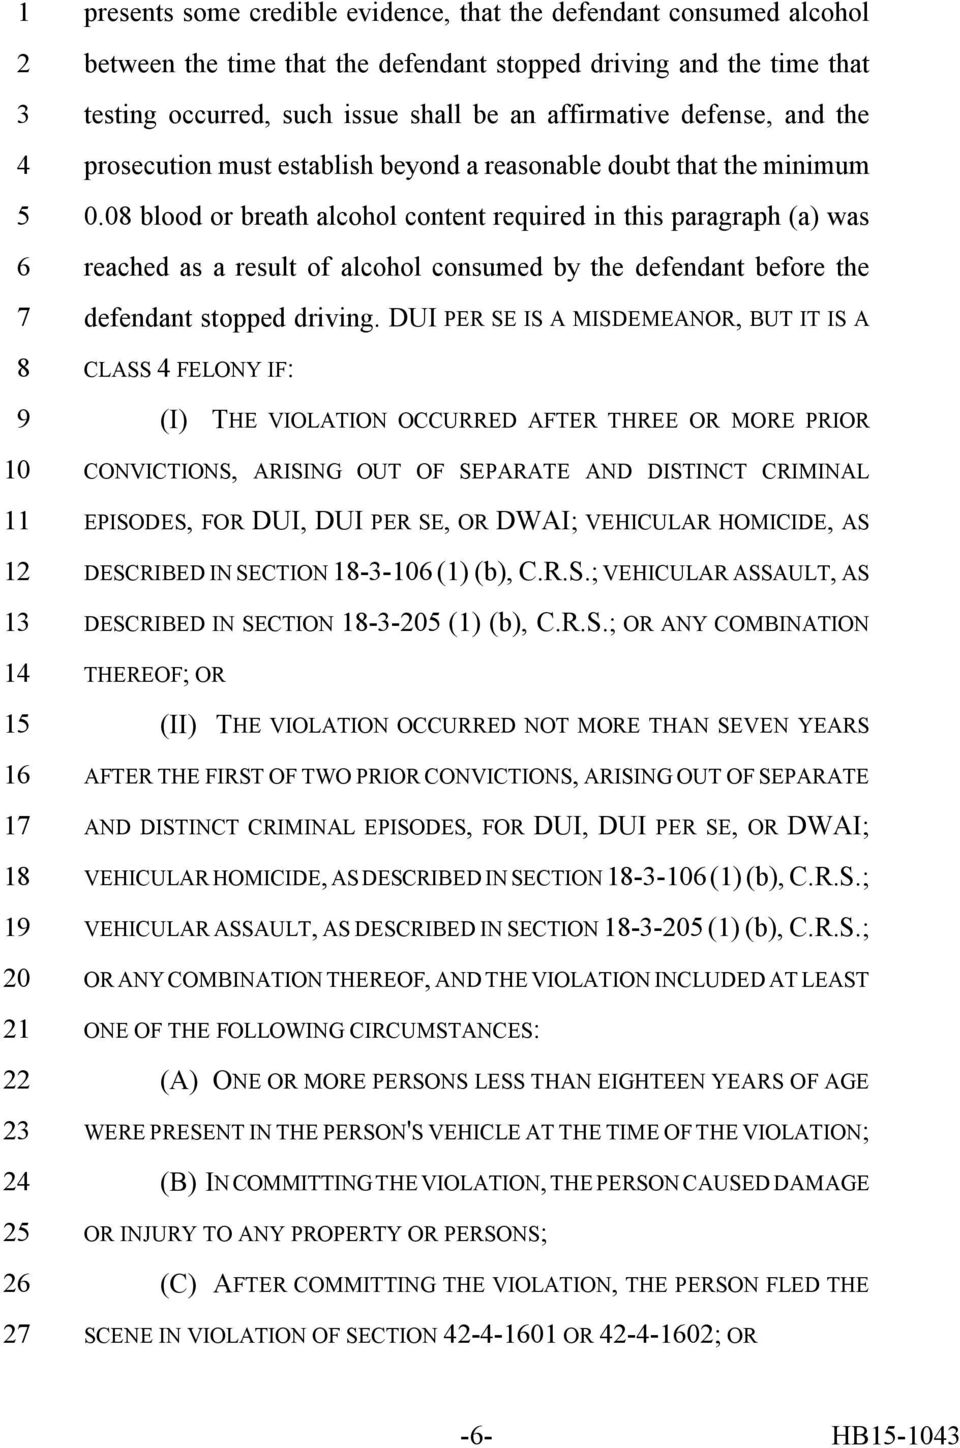 0 blood or breath alcohol content required in this paragraph (a) was reached as a result of alcohol consumed by the defendant before the defendant stopped driving.